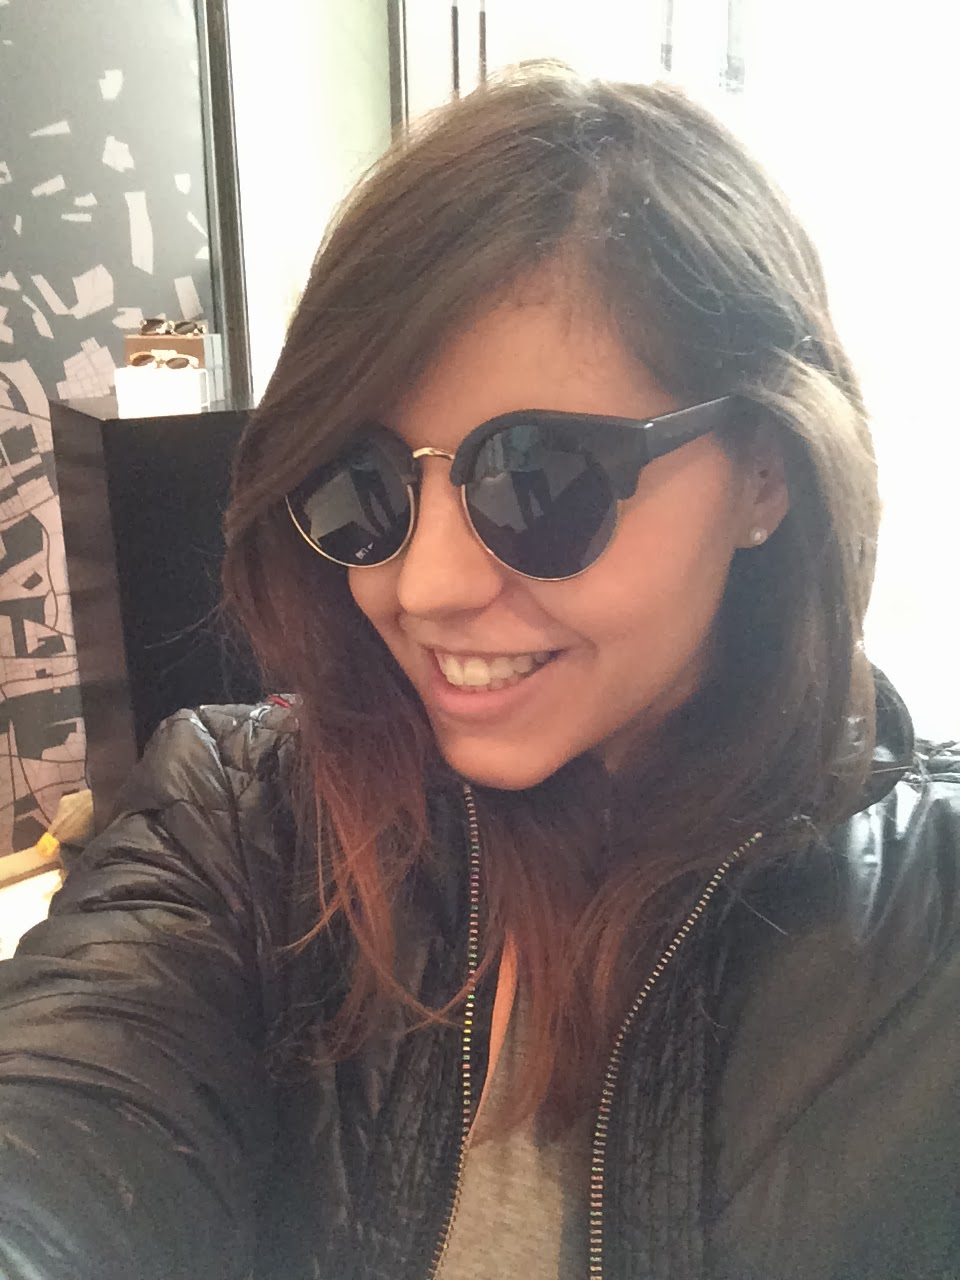 finlayandco , review, palazzo morando, vogue, vogue italia, vogue talent